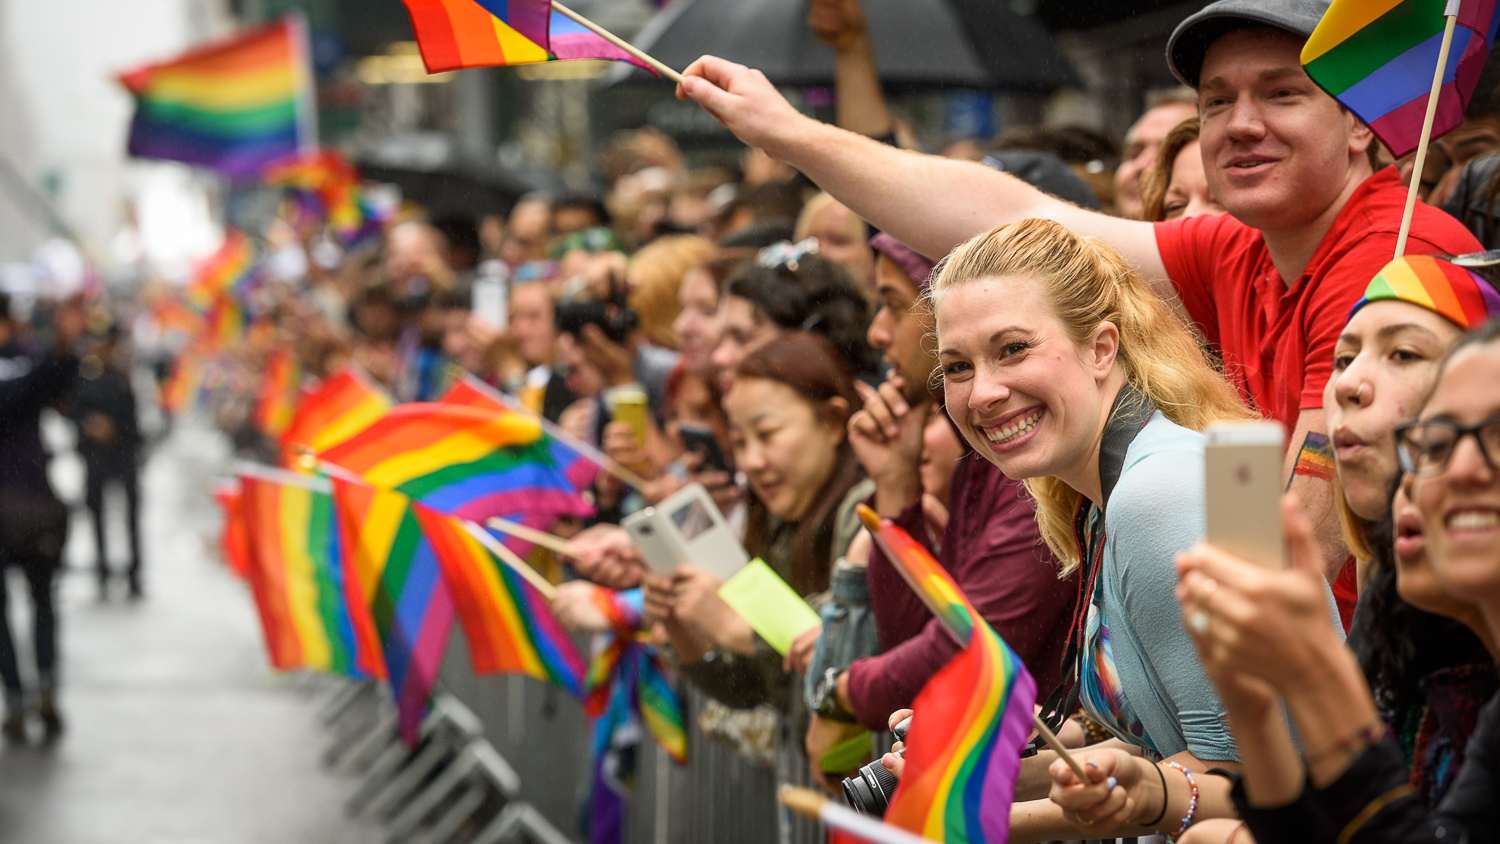 Awesome photos of the NYC LGBT Pride March